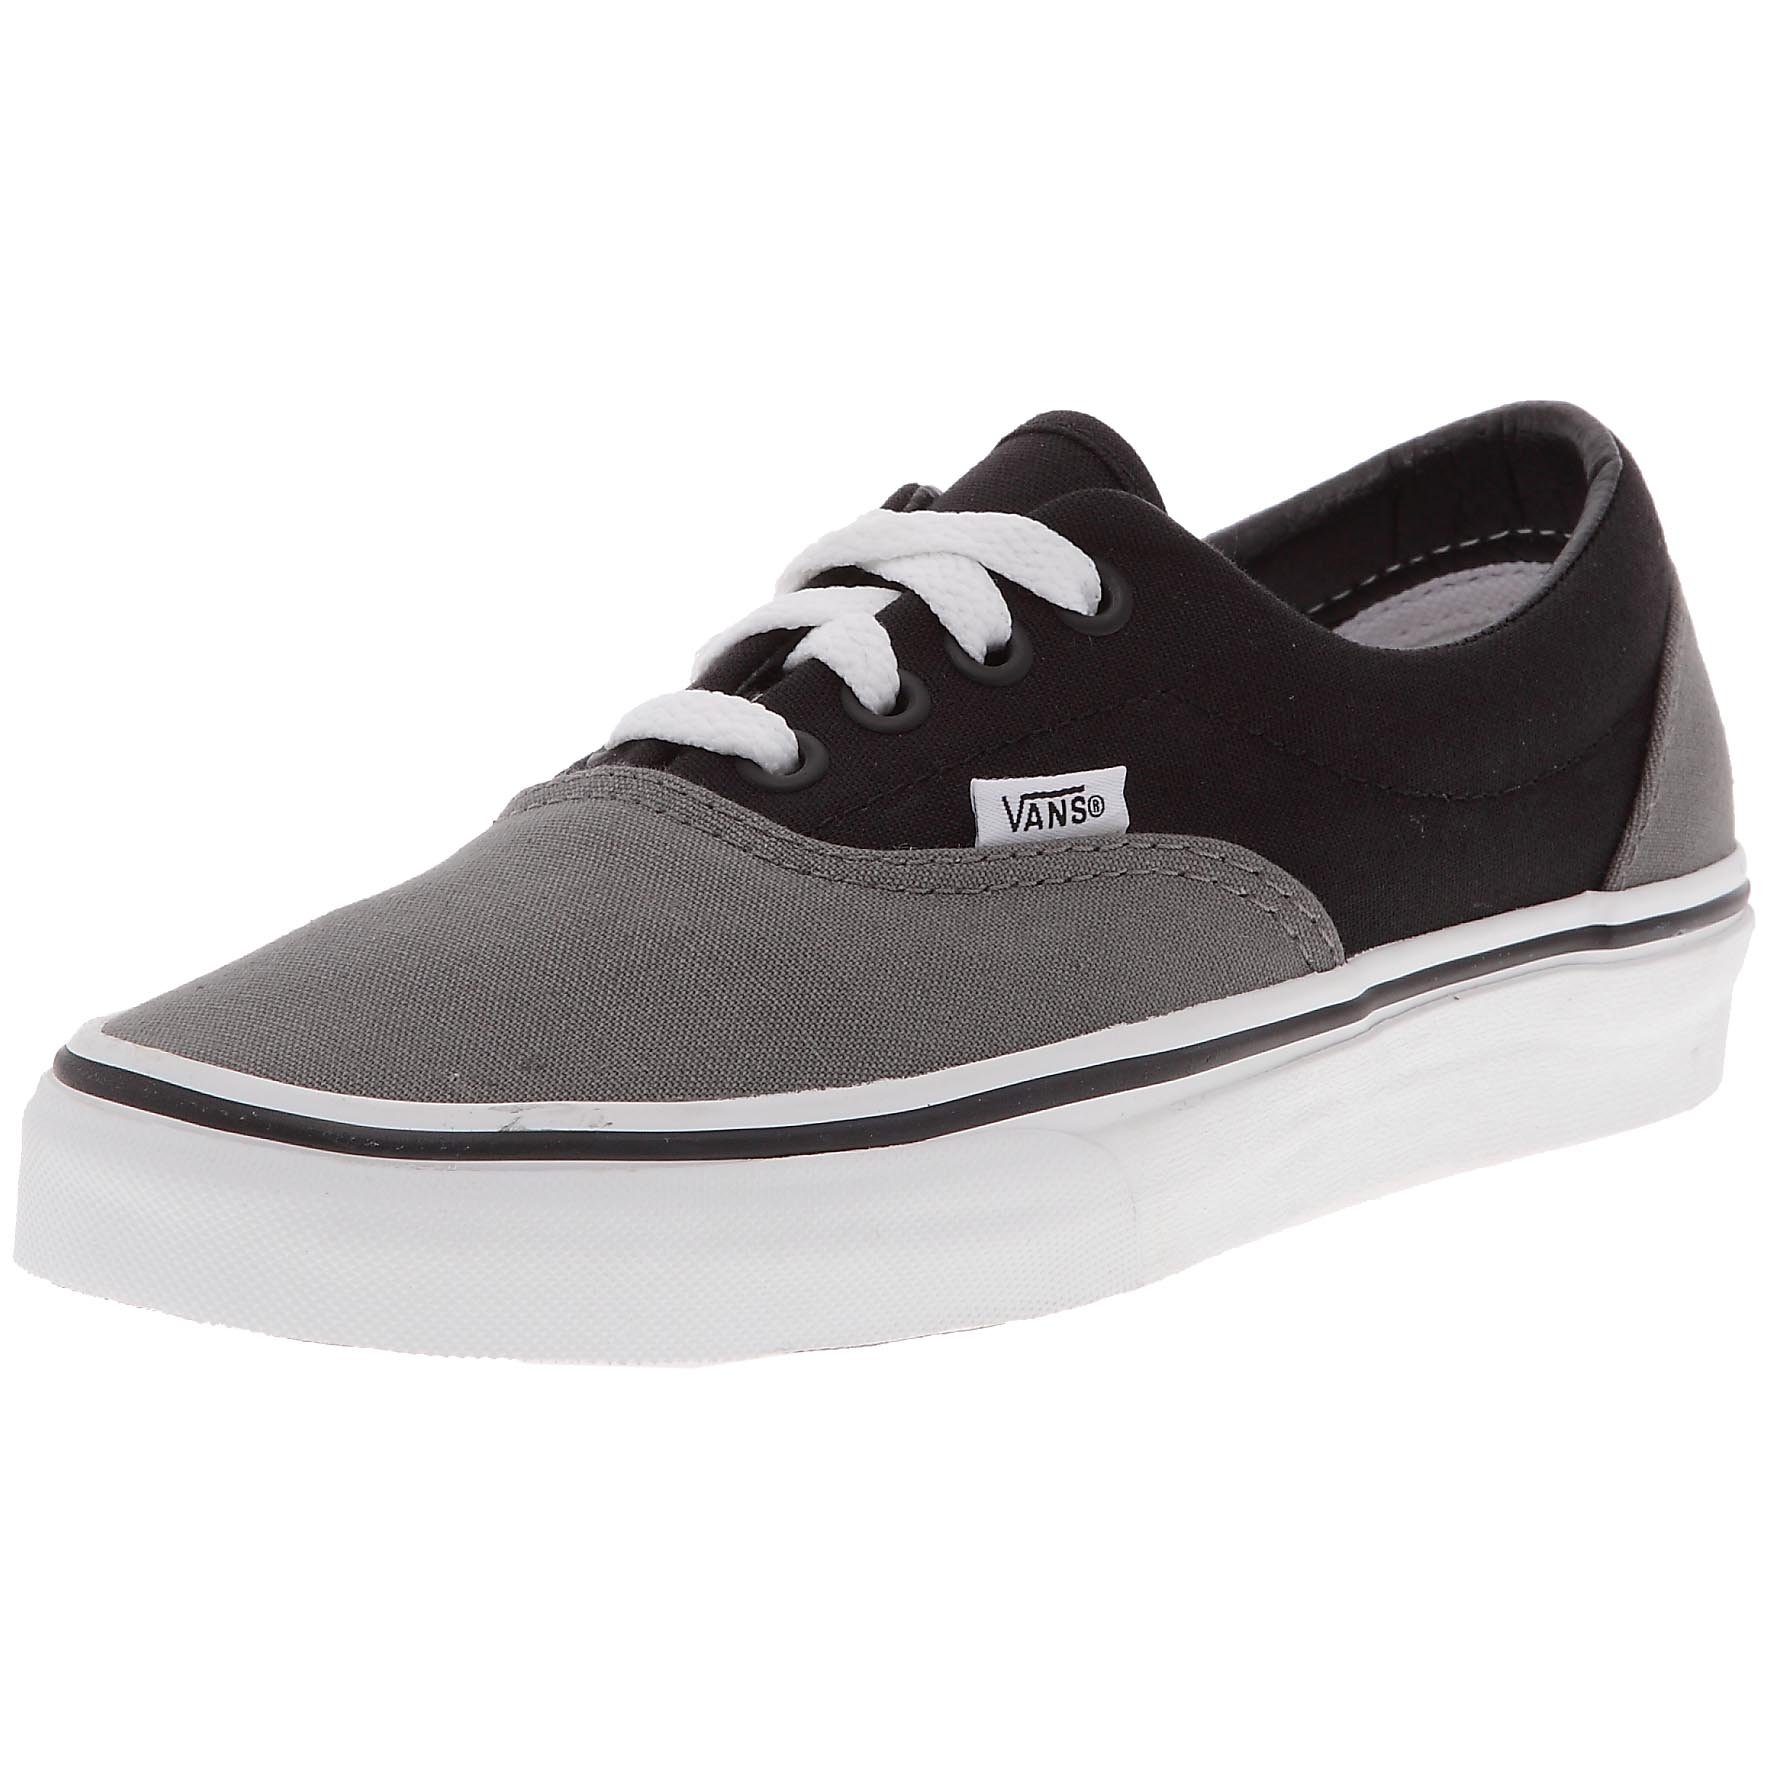 c32a066929 Galleon - Vans ERA SKATE SHOES 4.5 (PEWTER BLACK)